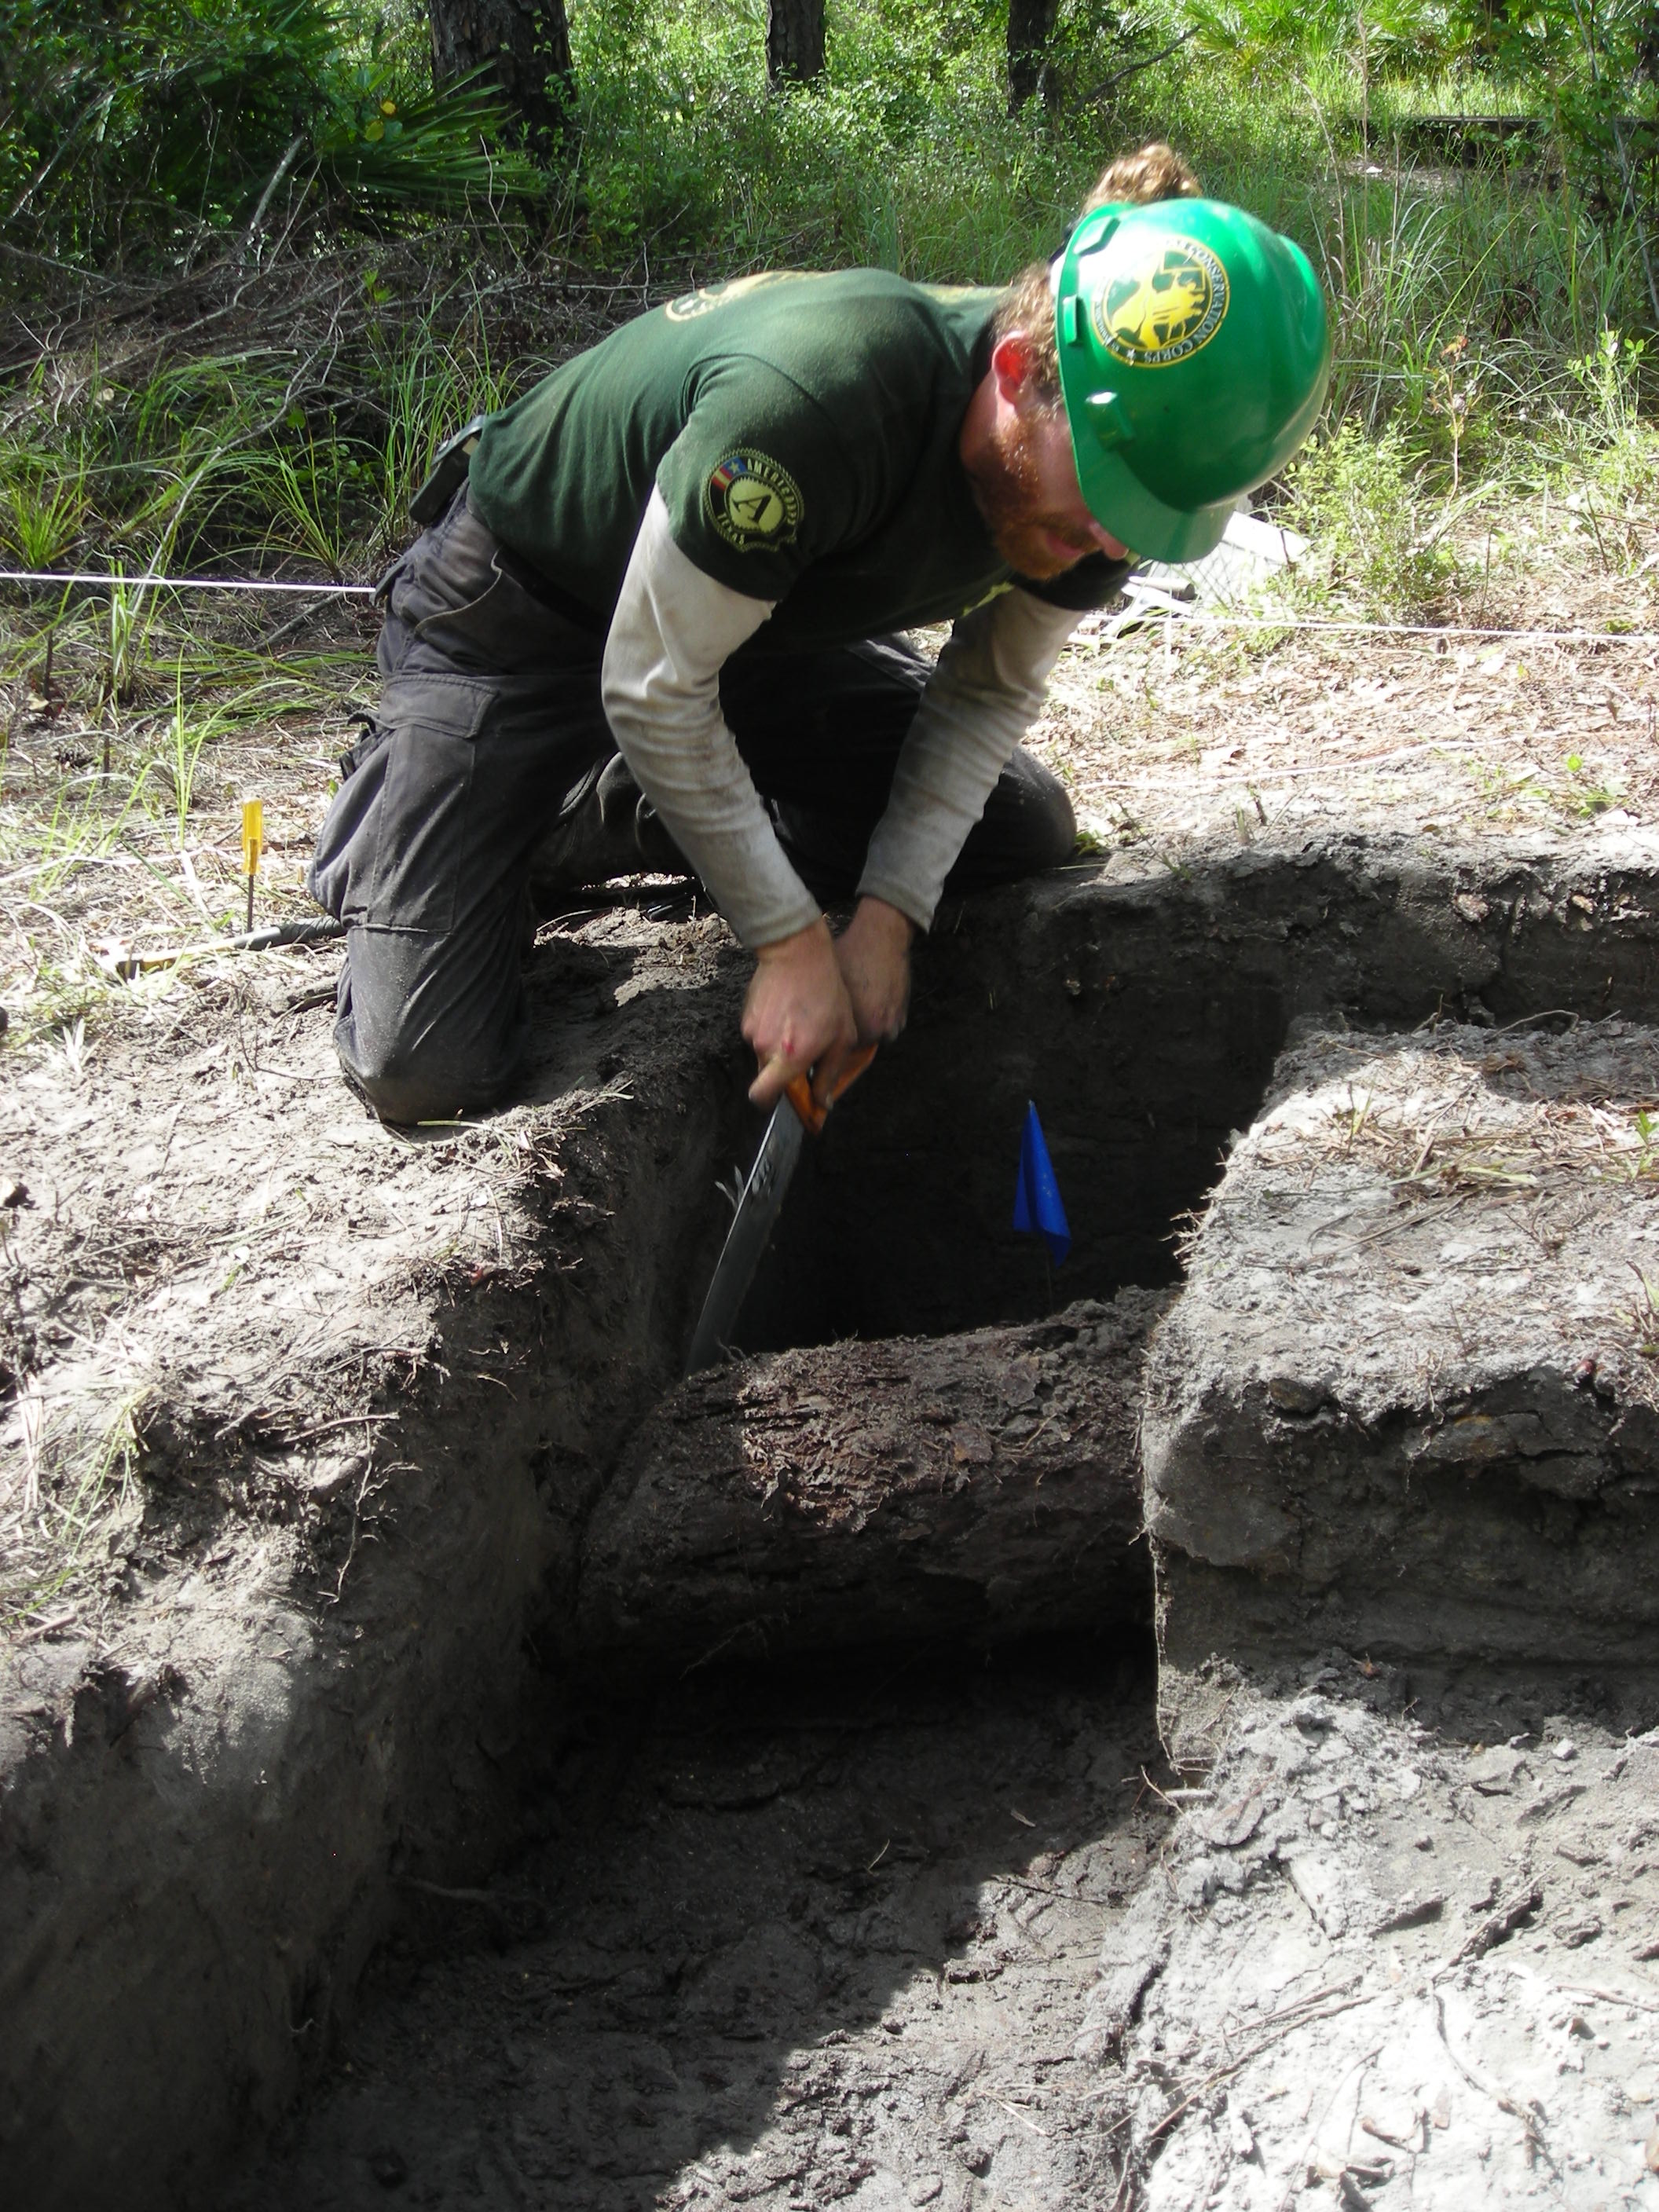 Texas Conservation Corps member removes a section of timber from the original 1812 fort for future study and interpretation. The remainder of the structure timber was left in place. (U.S. Forest Service photo/Rhonda Kimbrough)